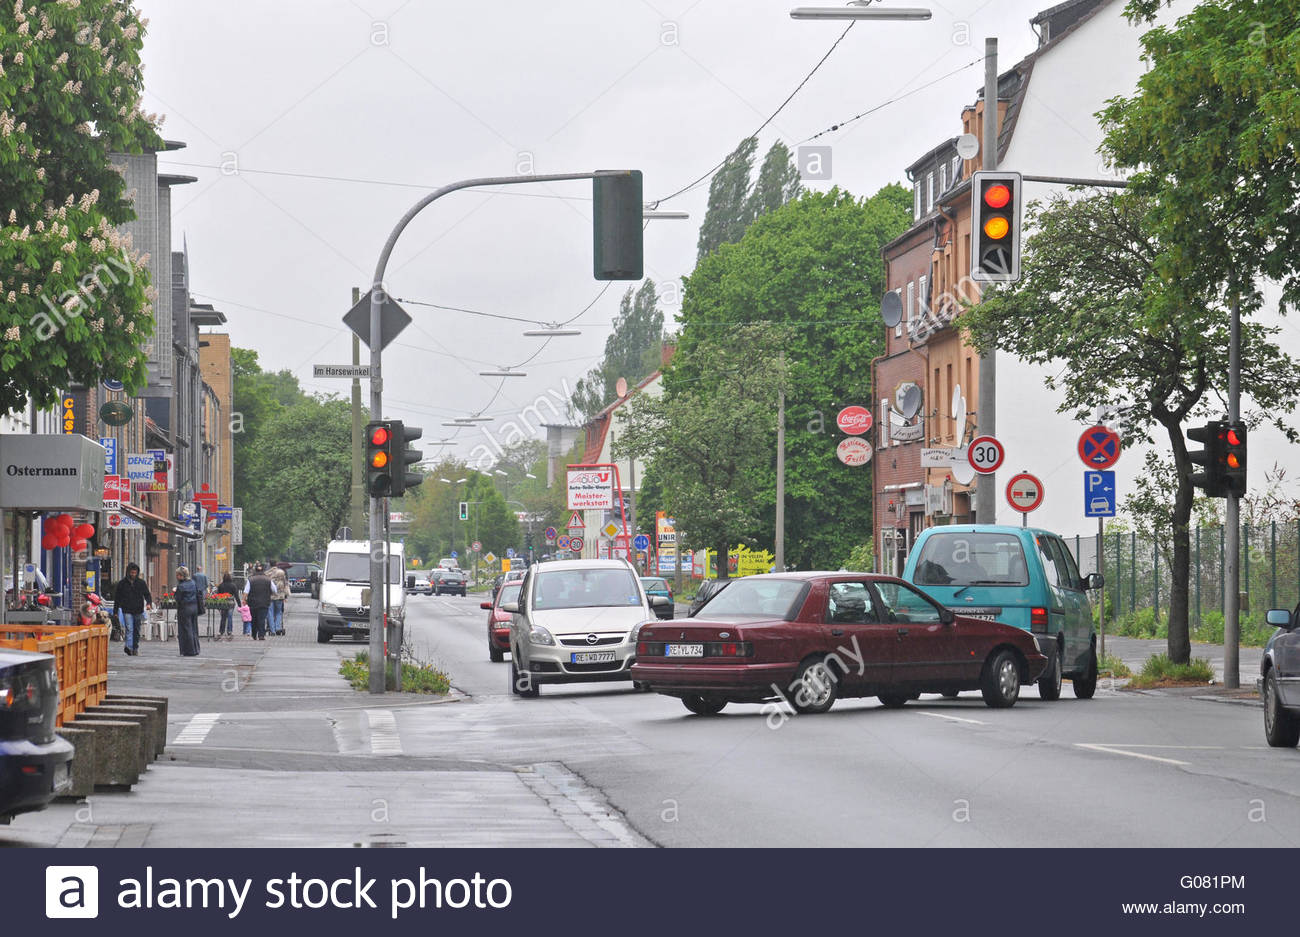 Main road with many shops and diners - Stock Image